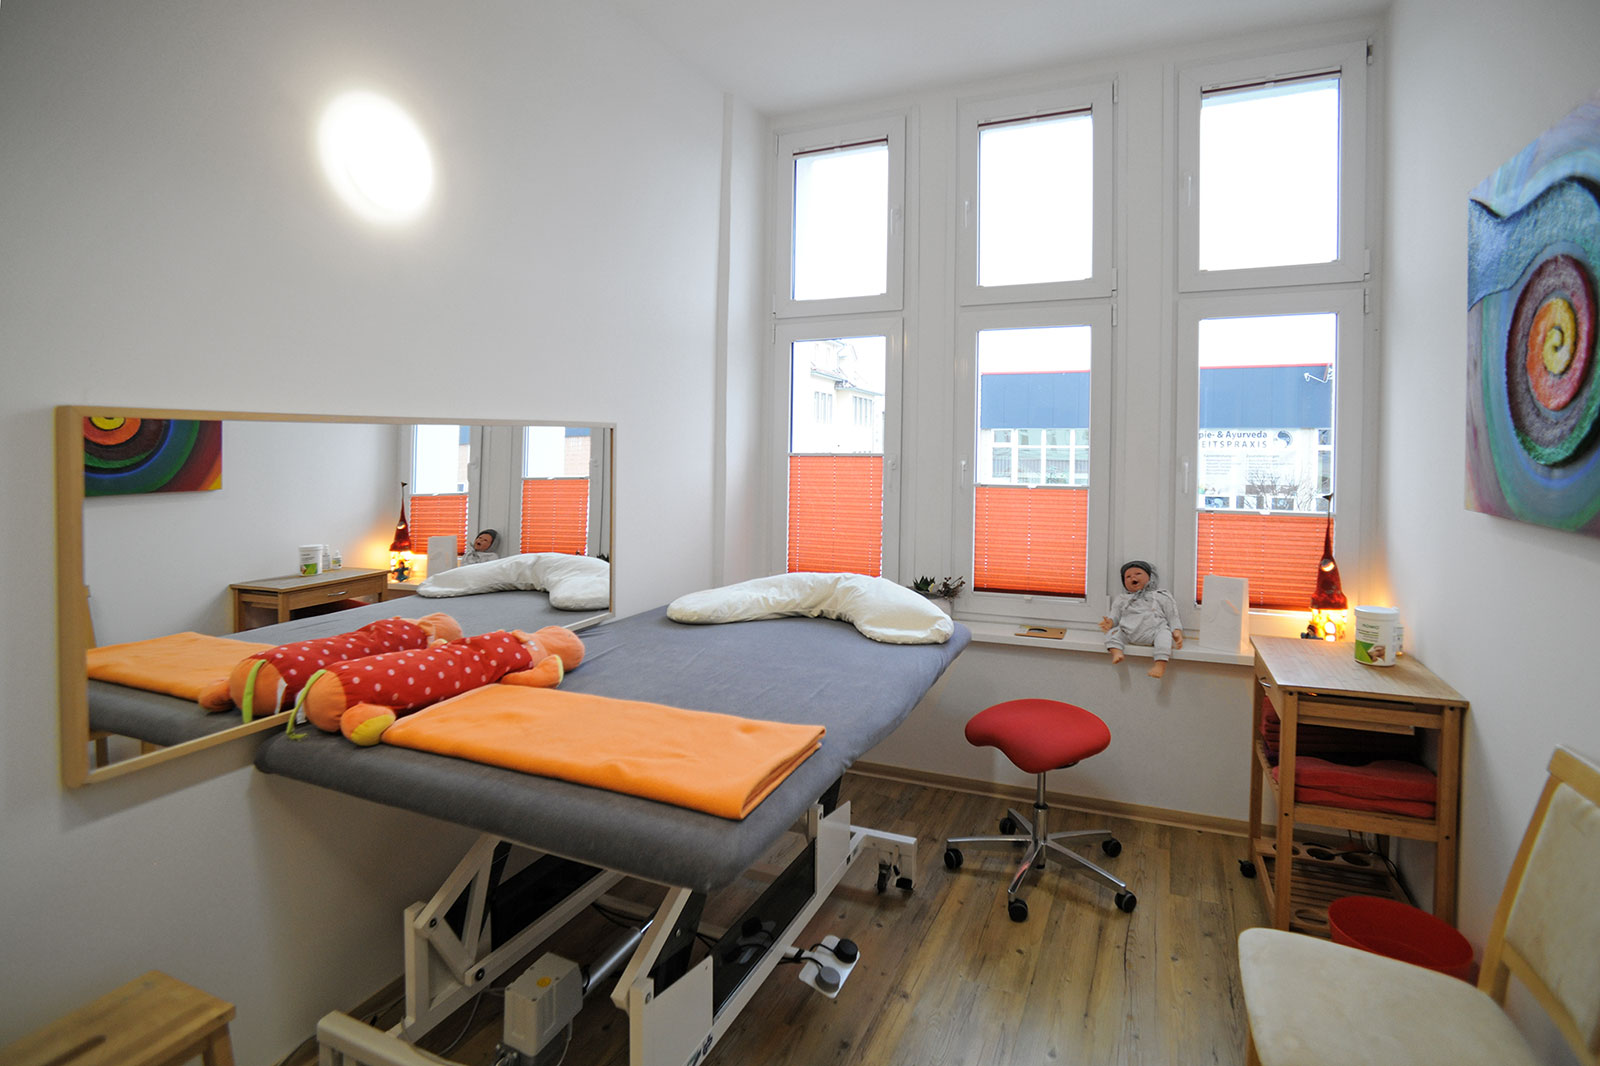 Physiotherapie Britta Schmidt in Nordhausen